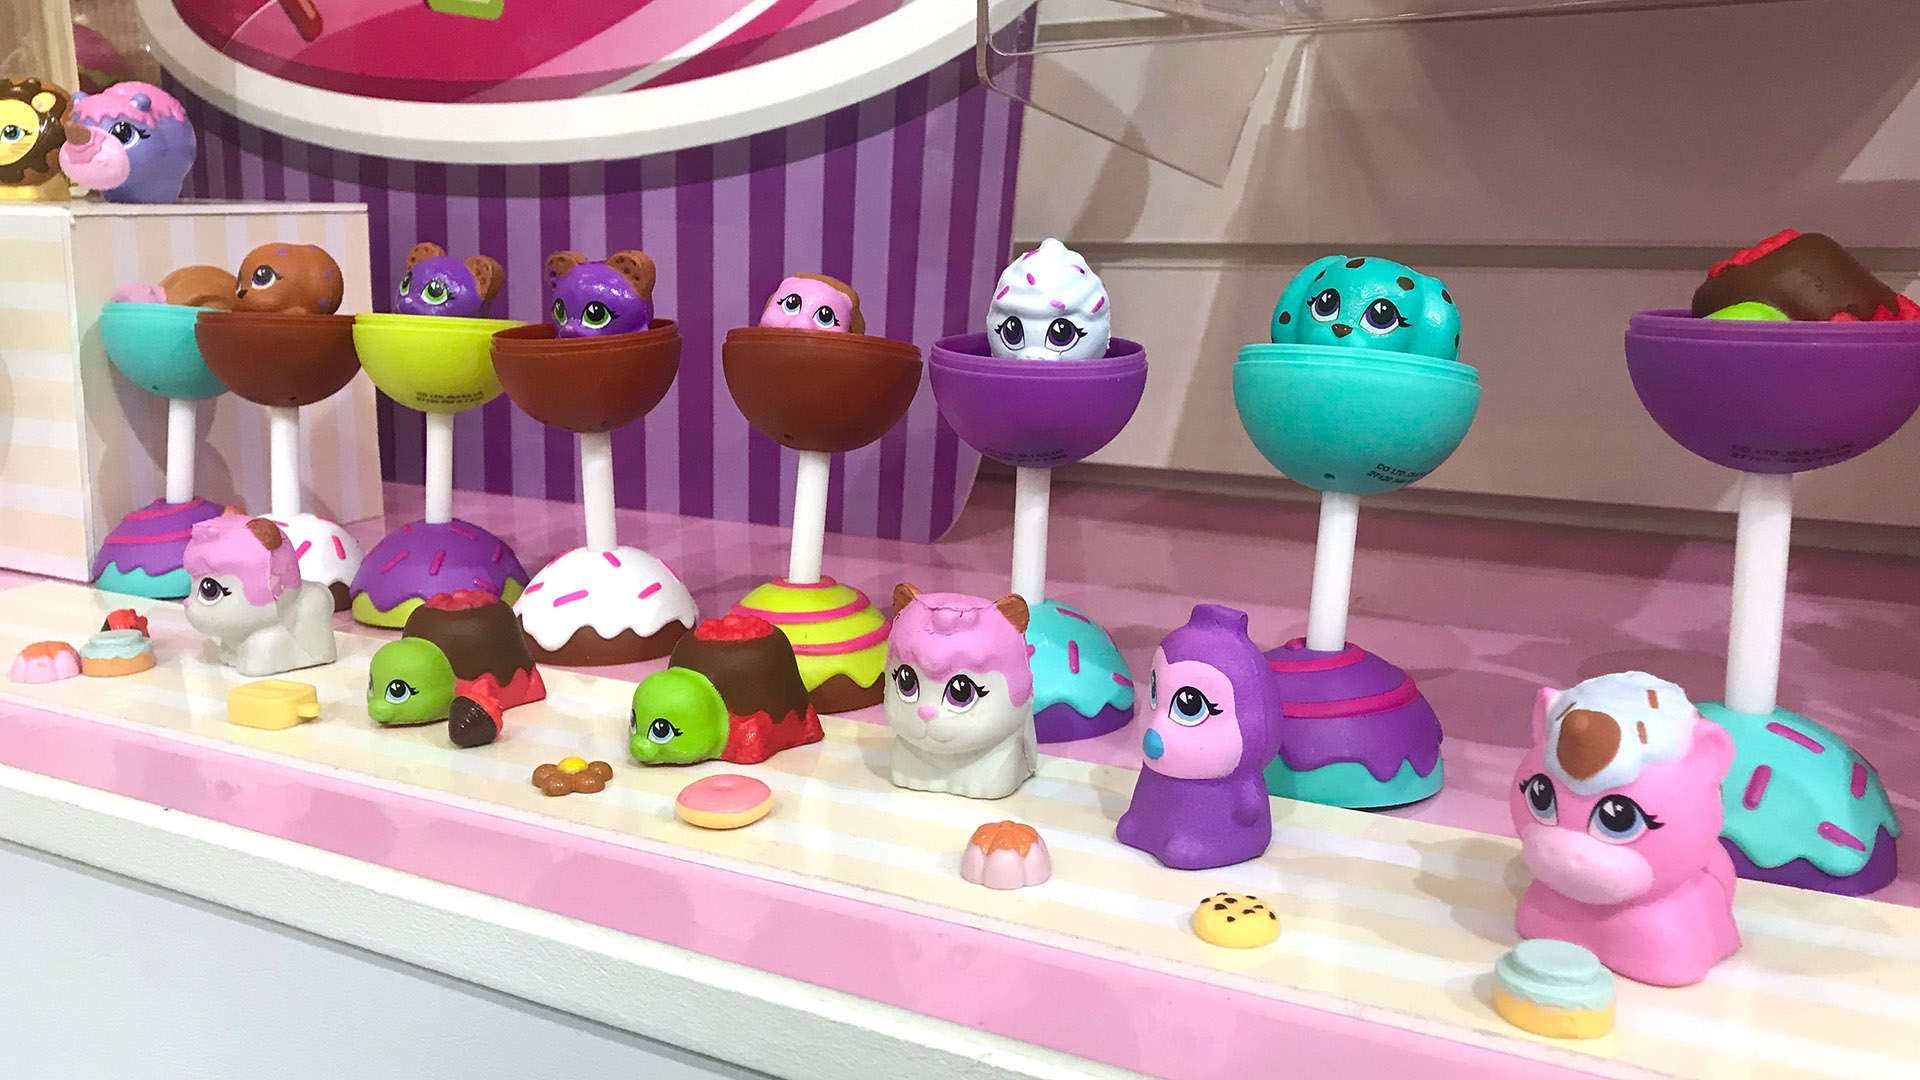 Cake Pop Cuties at Toyfair